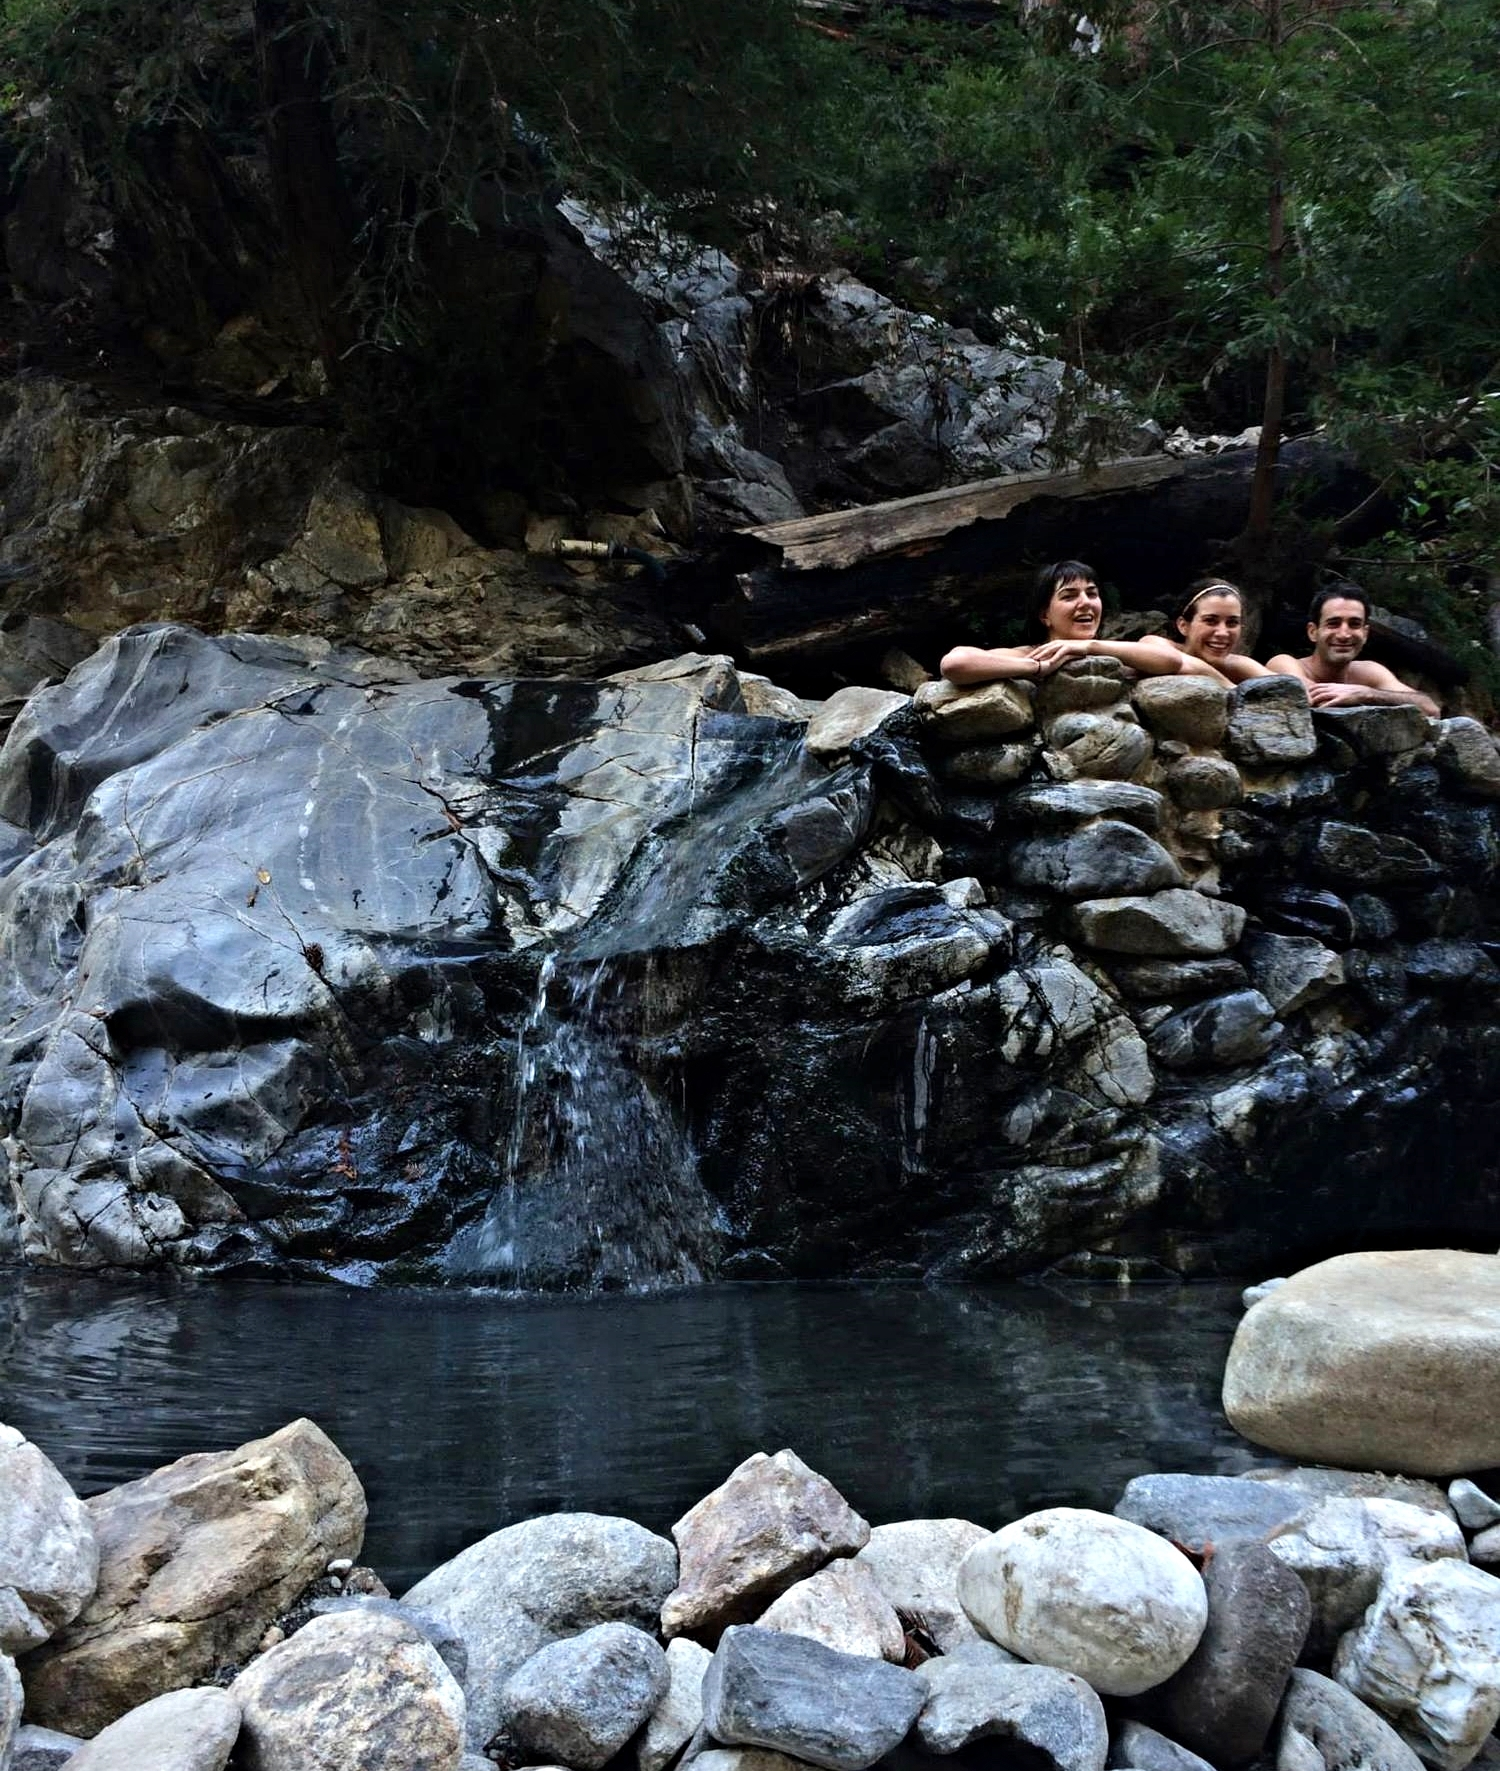 Relaxing in the hot pools before hitting the trail again